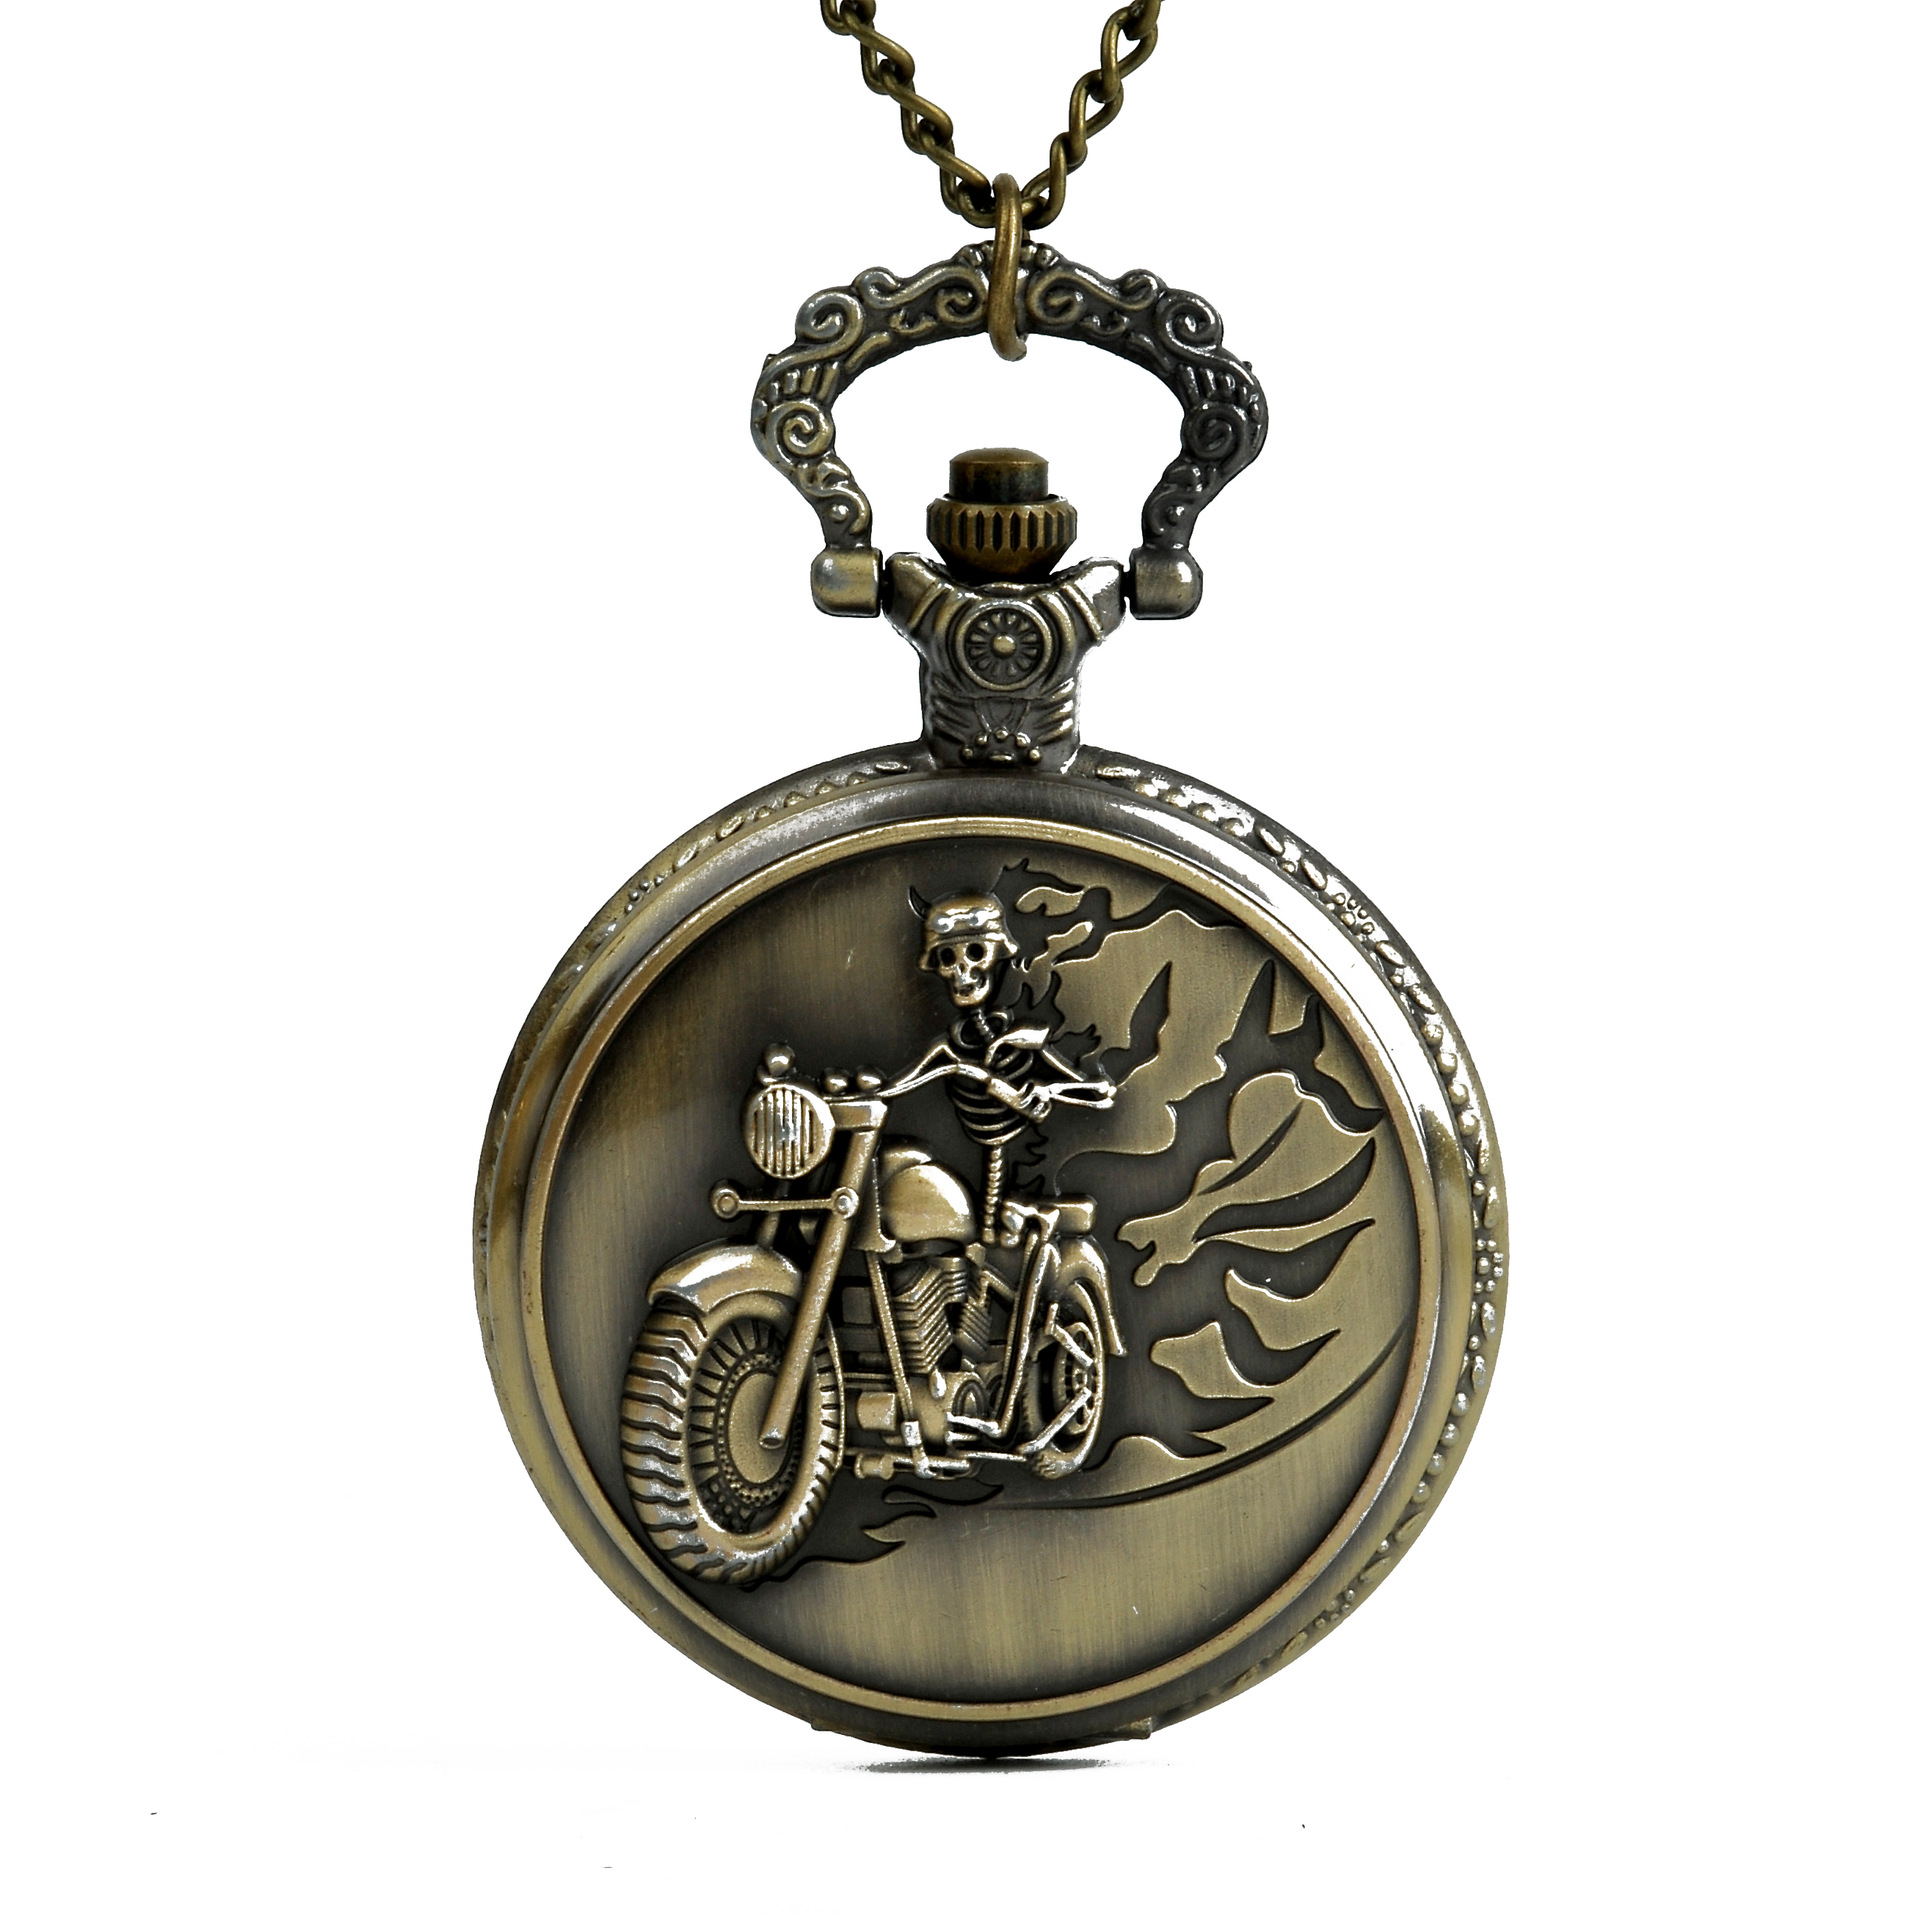 Old Antique  Bronze Skull Design Riding Motorcycle Chain Pocket Watch For Grandpa  And Dad As The Greatest Gifts